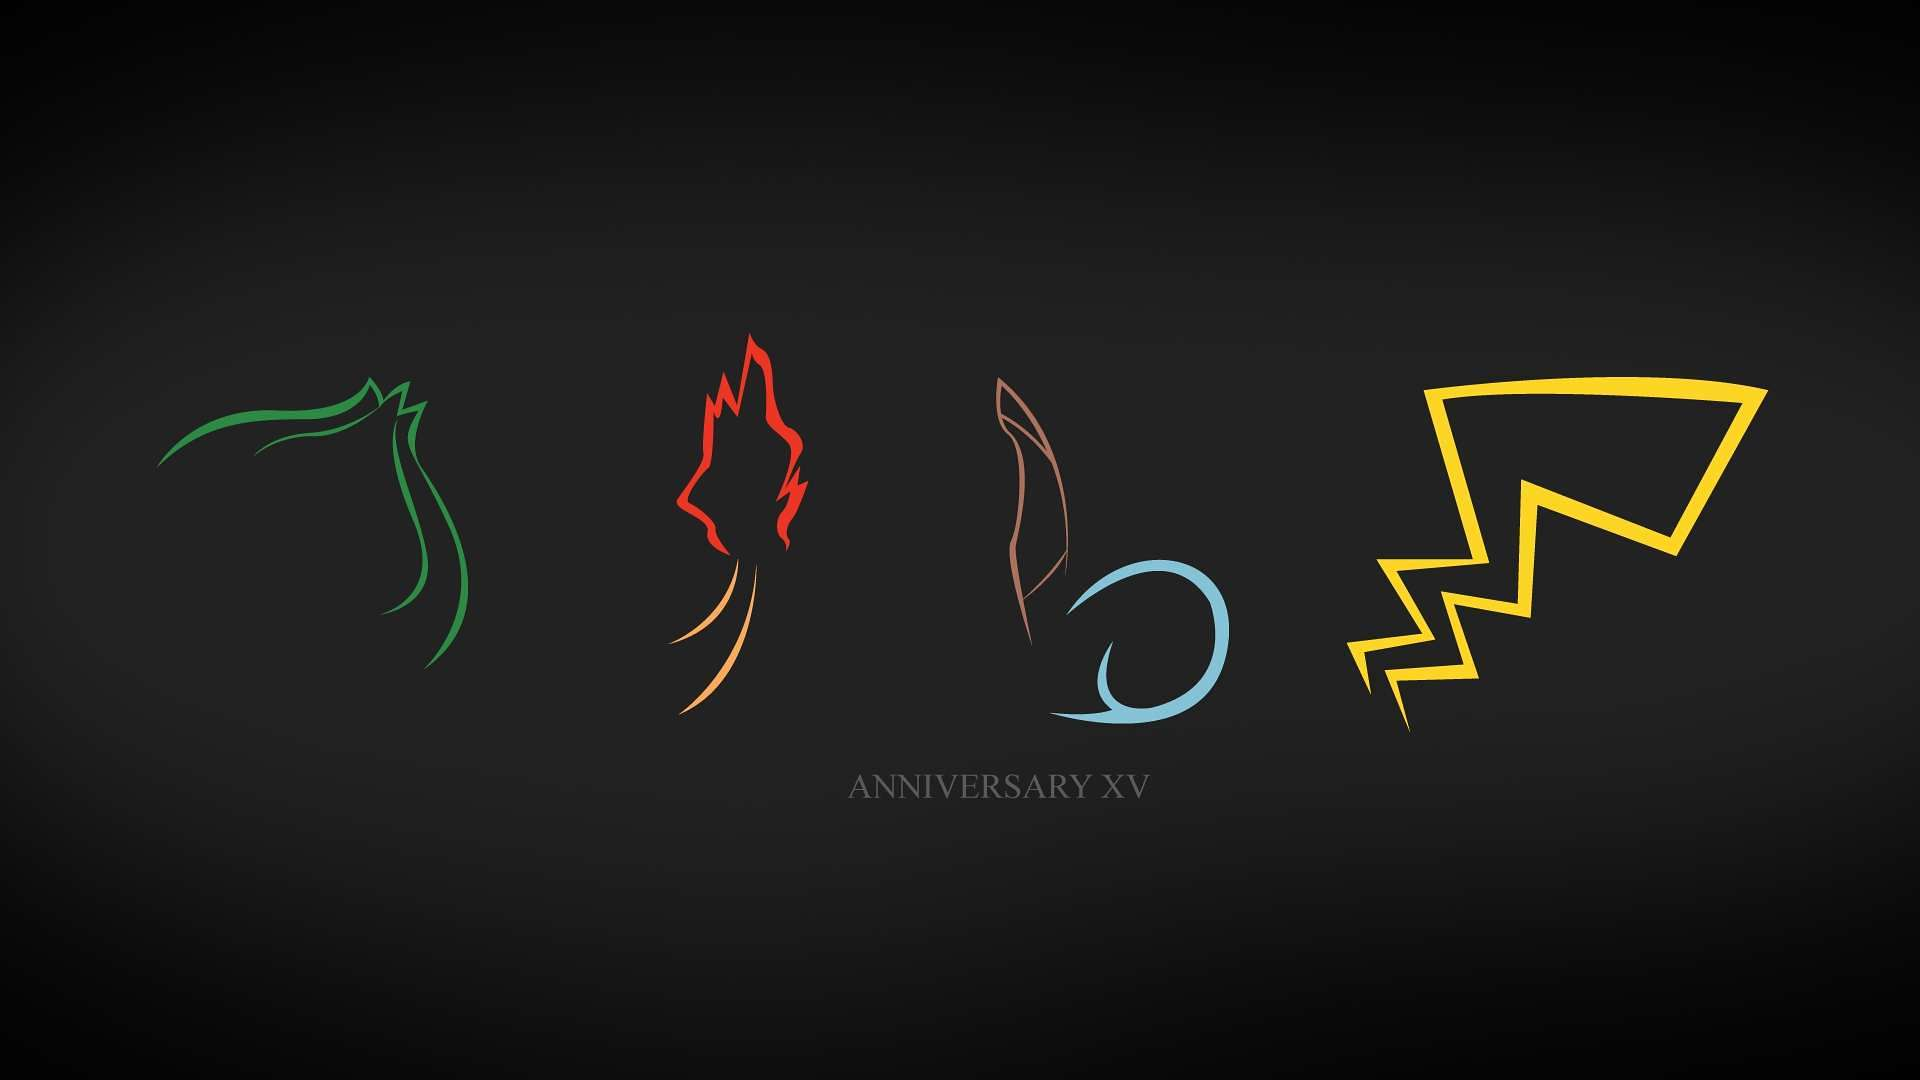 Pokemon Anniversary XV HD Wallpaper FullHDWpp   Full HD Wallpapers 1920x1080